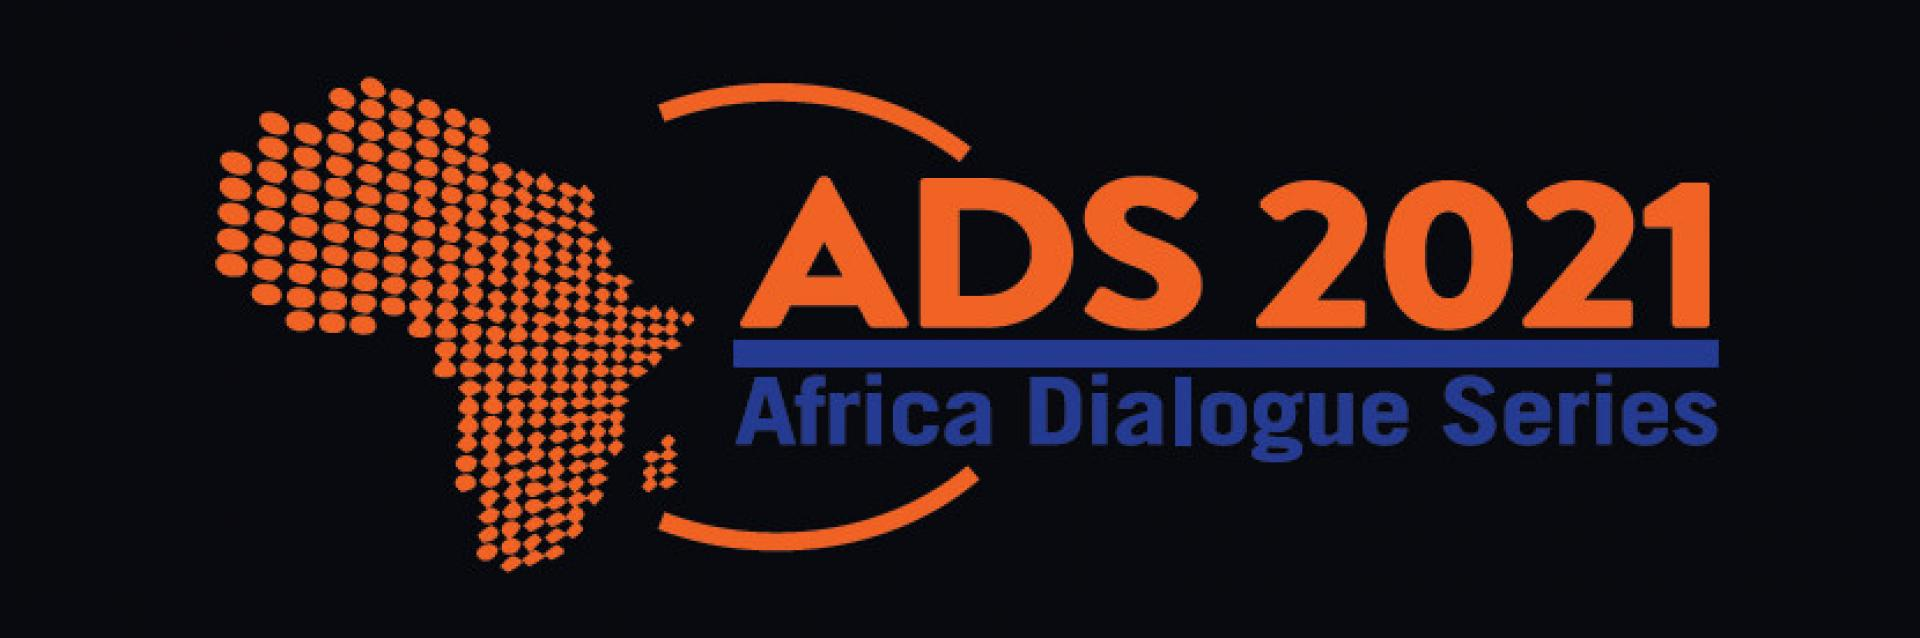 Africa Dialogue Series 2021